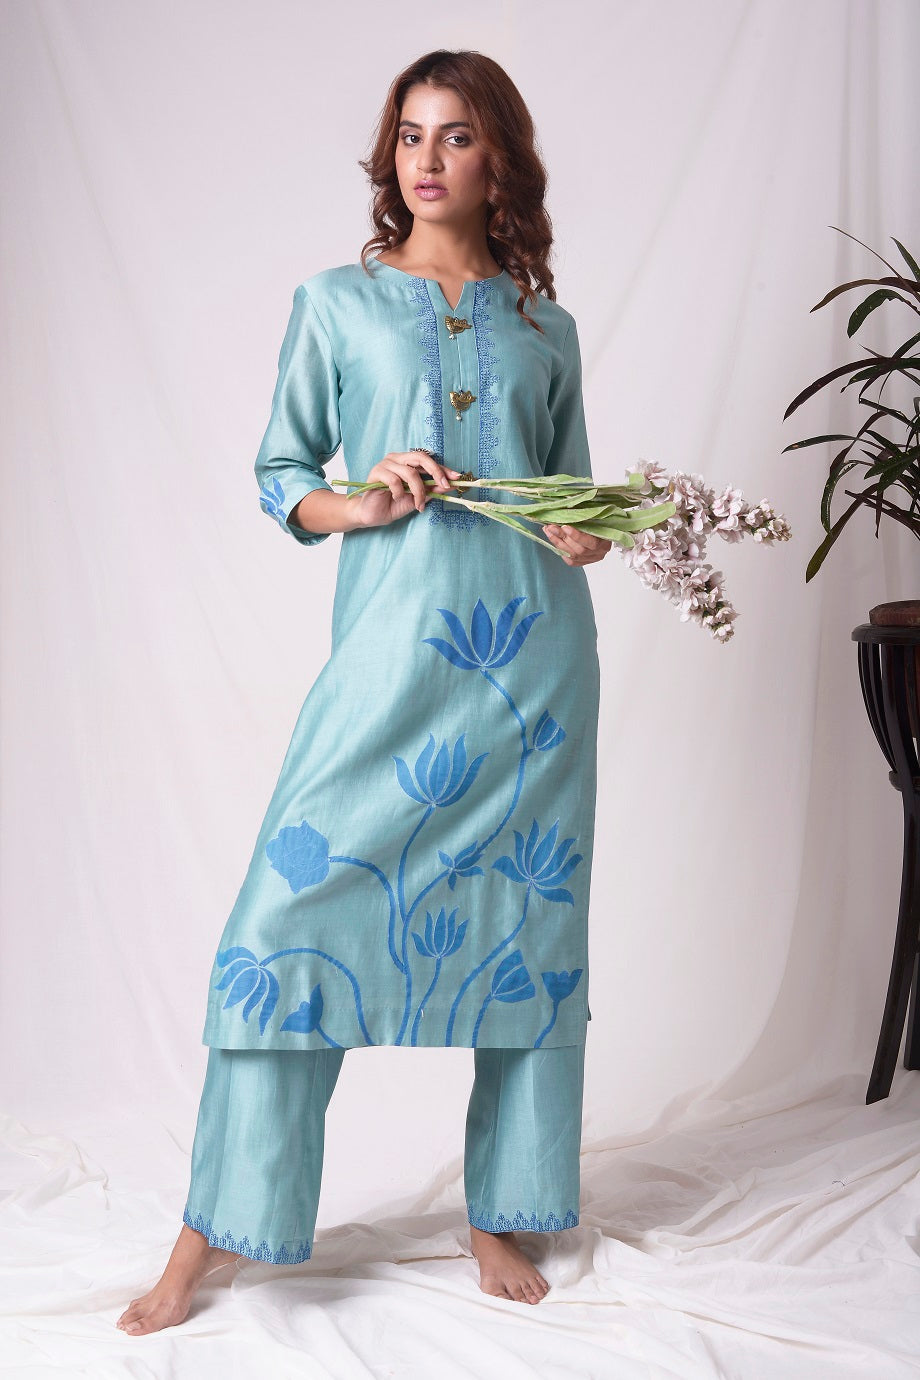 Aqua Blue Chandei Suit Online in USA-full view